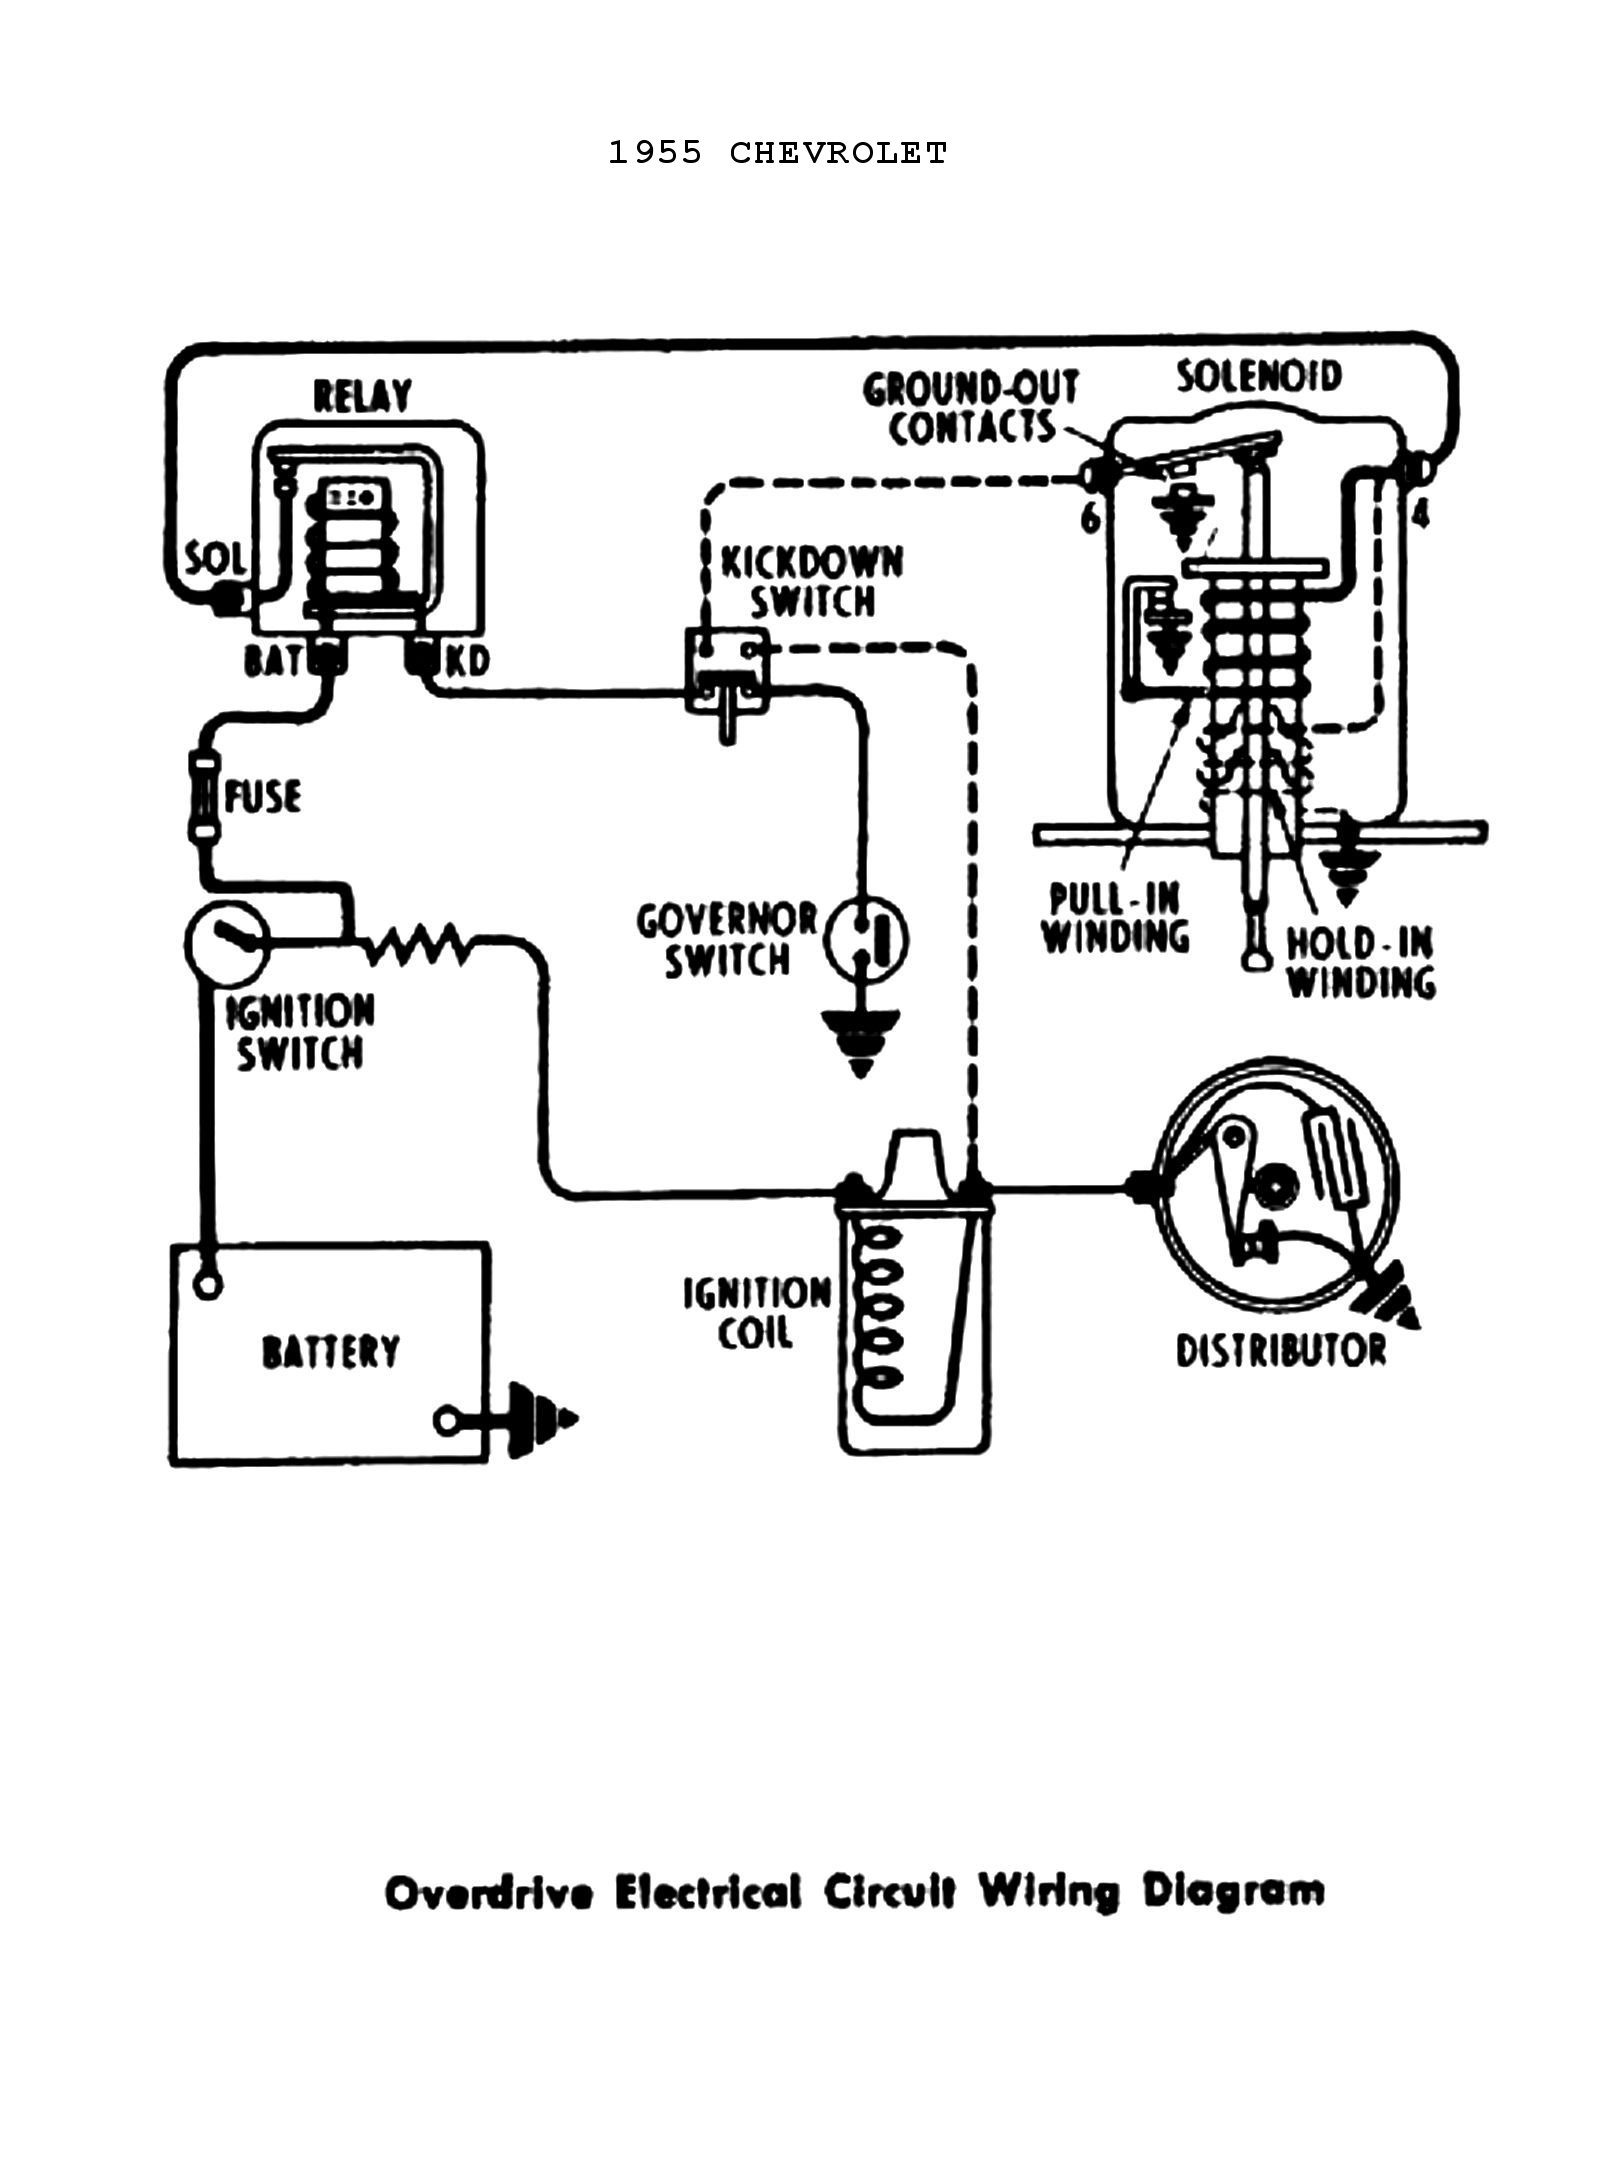 Gm Coil Wiring Diagram Wiring Diagram Database